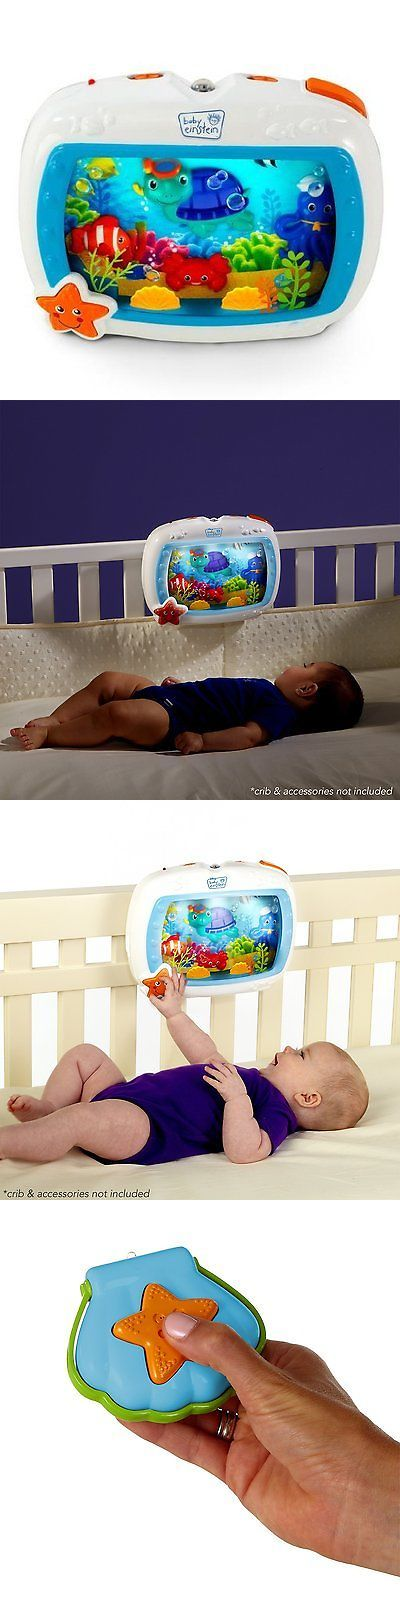 Baby: Baby Crib Toy Musical Infant Soother Light Up Sensory Toys Bed Mobile Gift New -> BUY IT NOW ONLY: $36.53 on eBay!